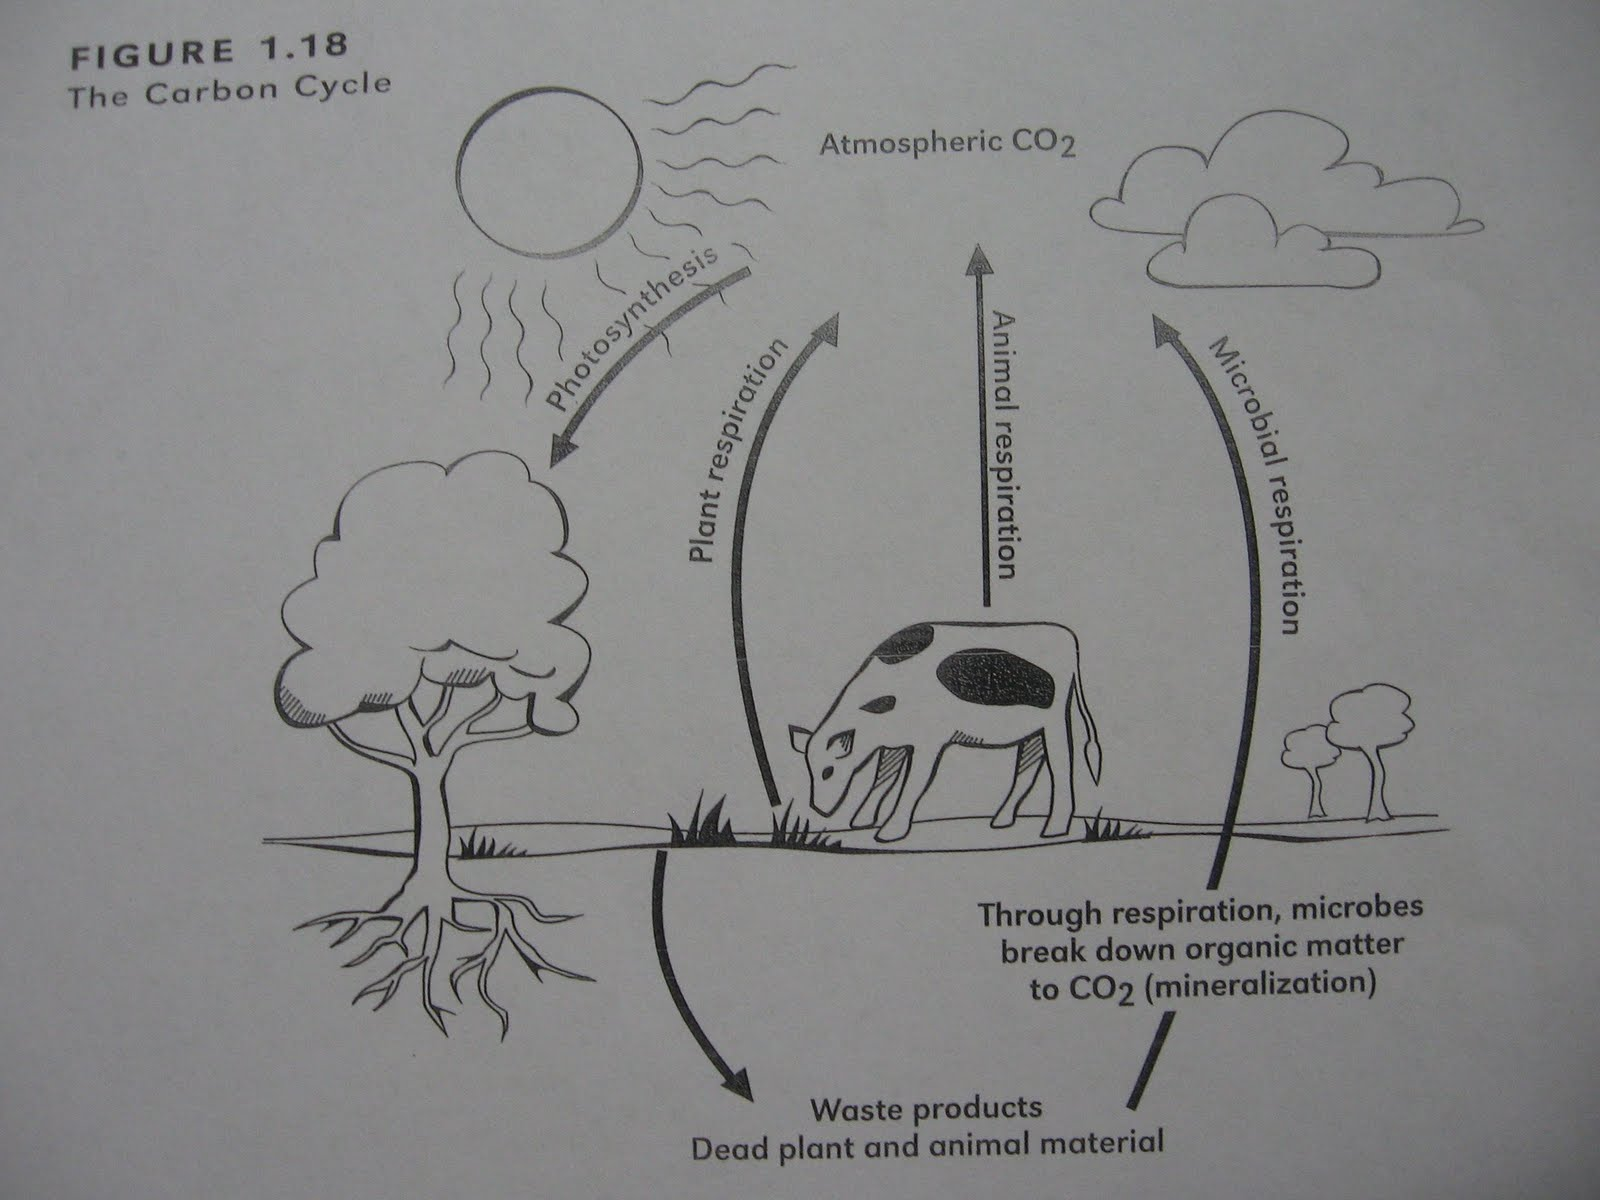 medium resolution of for homework some people need to redo some of their answers we read about the nitrogen cycle and looked at a diagram that shows how nitrogen fixing